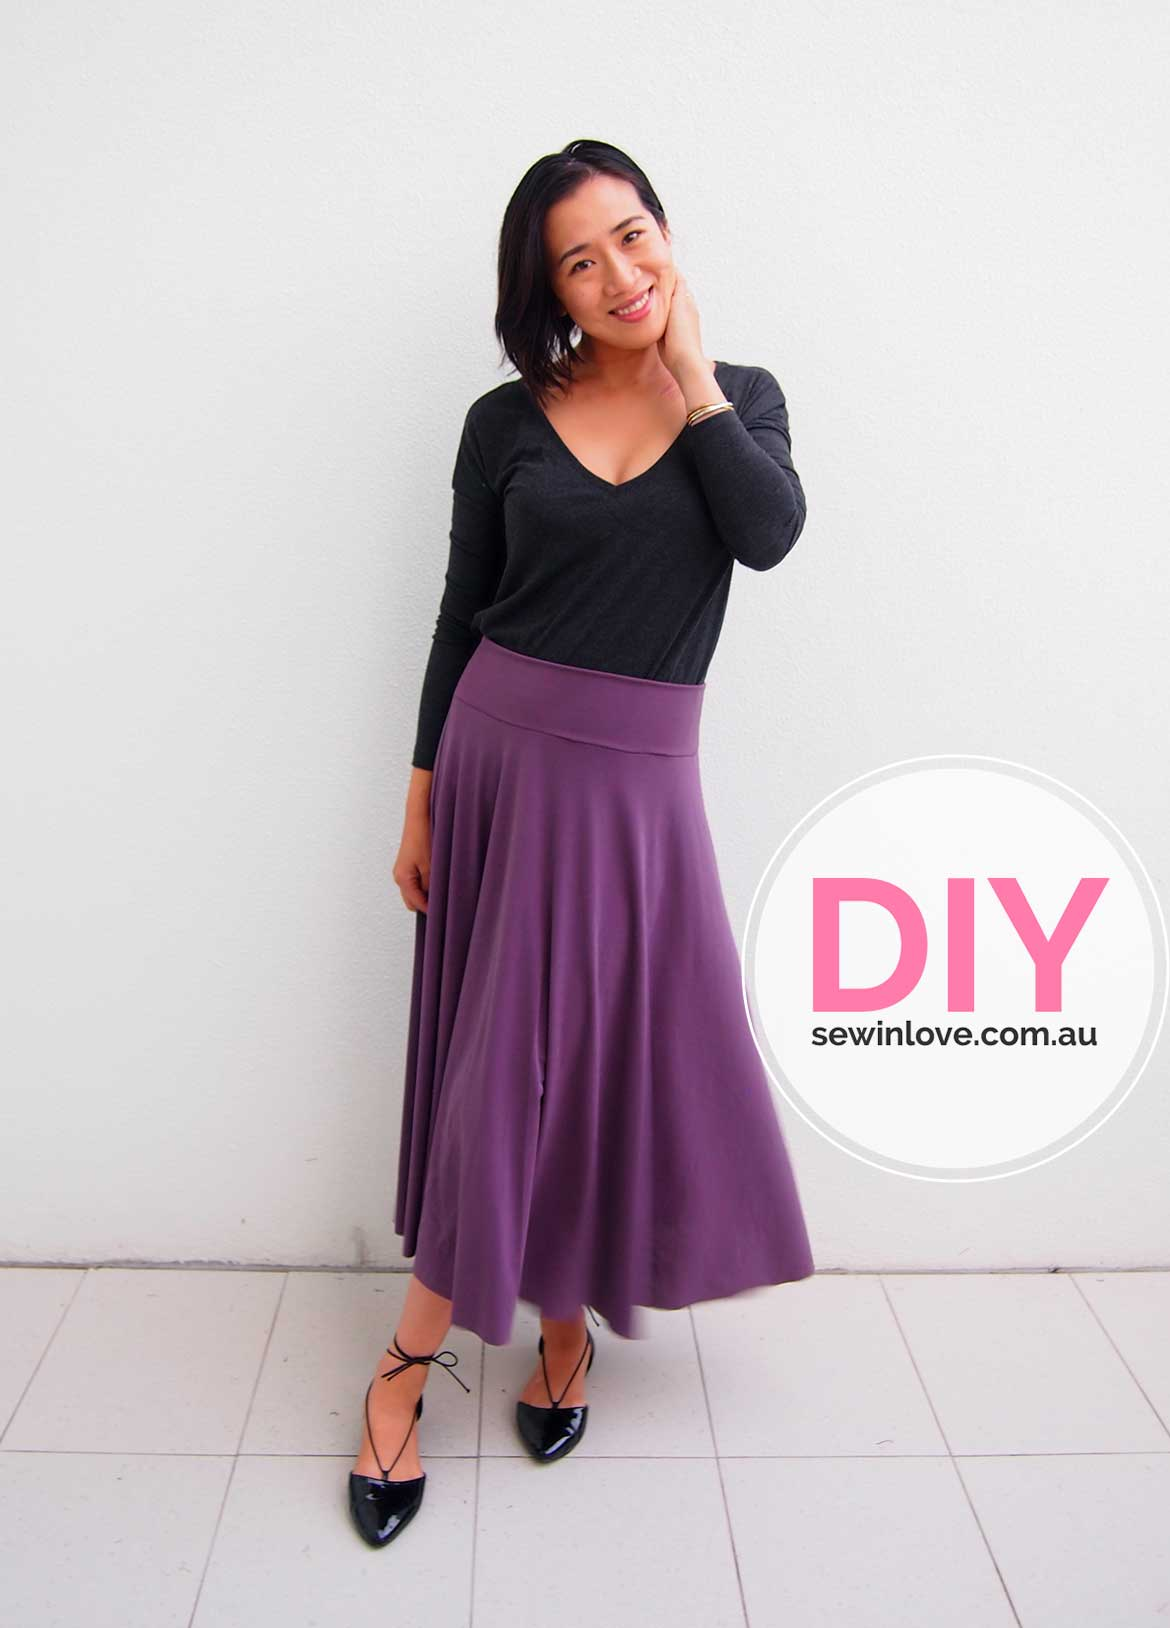 DIY Circle Skirt | How to make an easy half circle skirt. This yoga skirt is extremely comfortable and looks great with flats. Learn how to make it at Sewinlove.com.au!